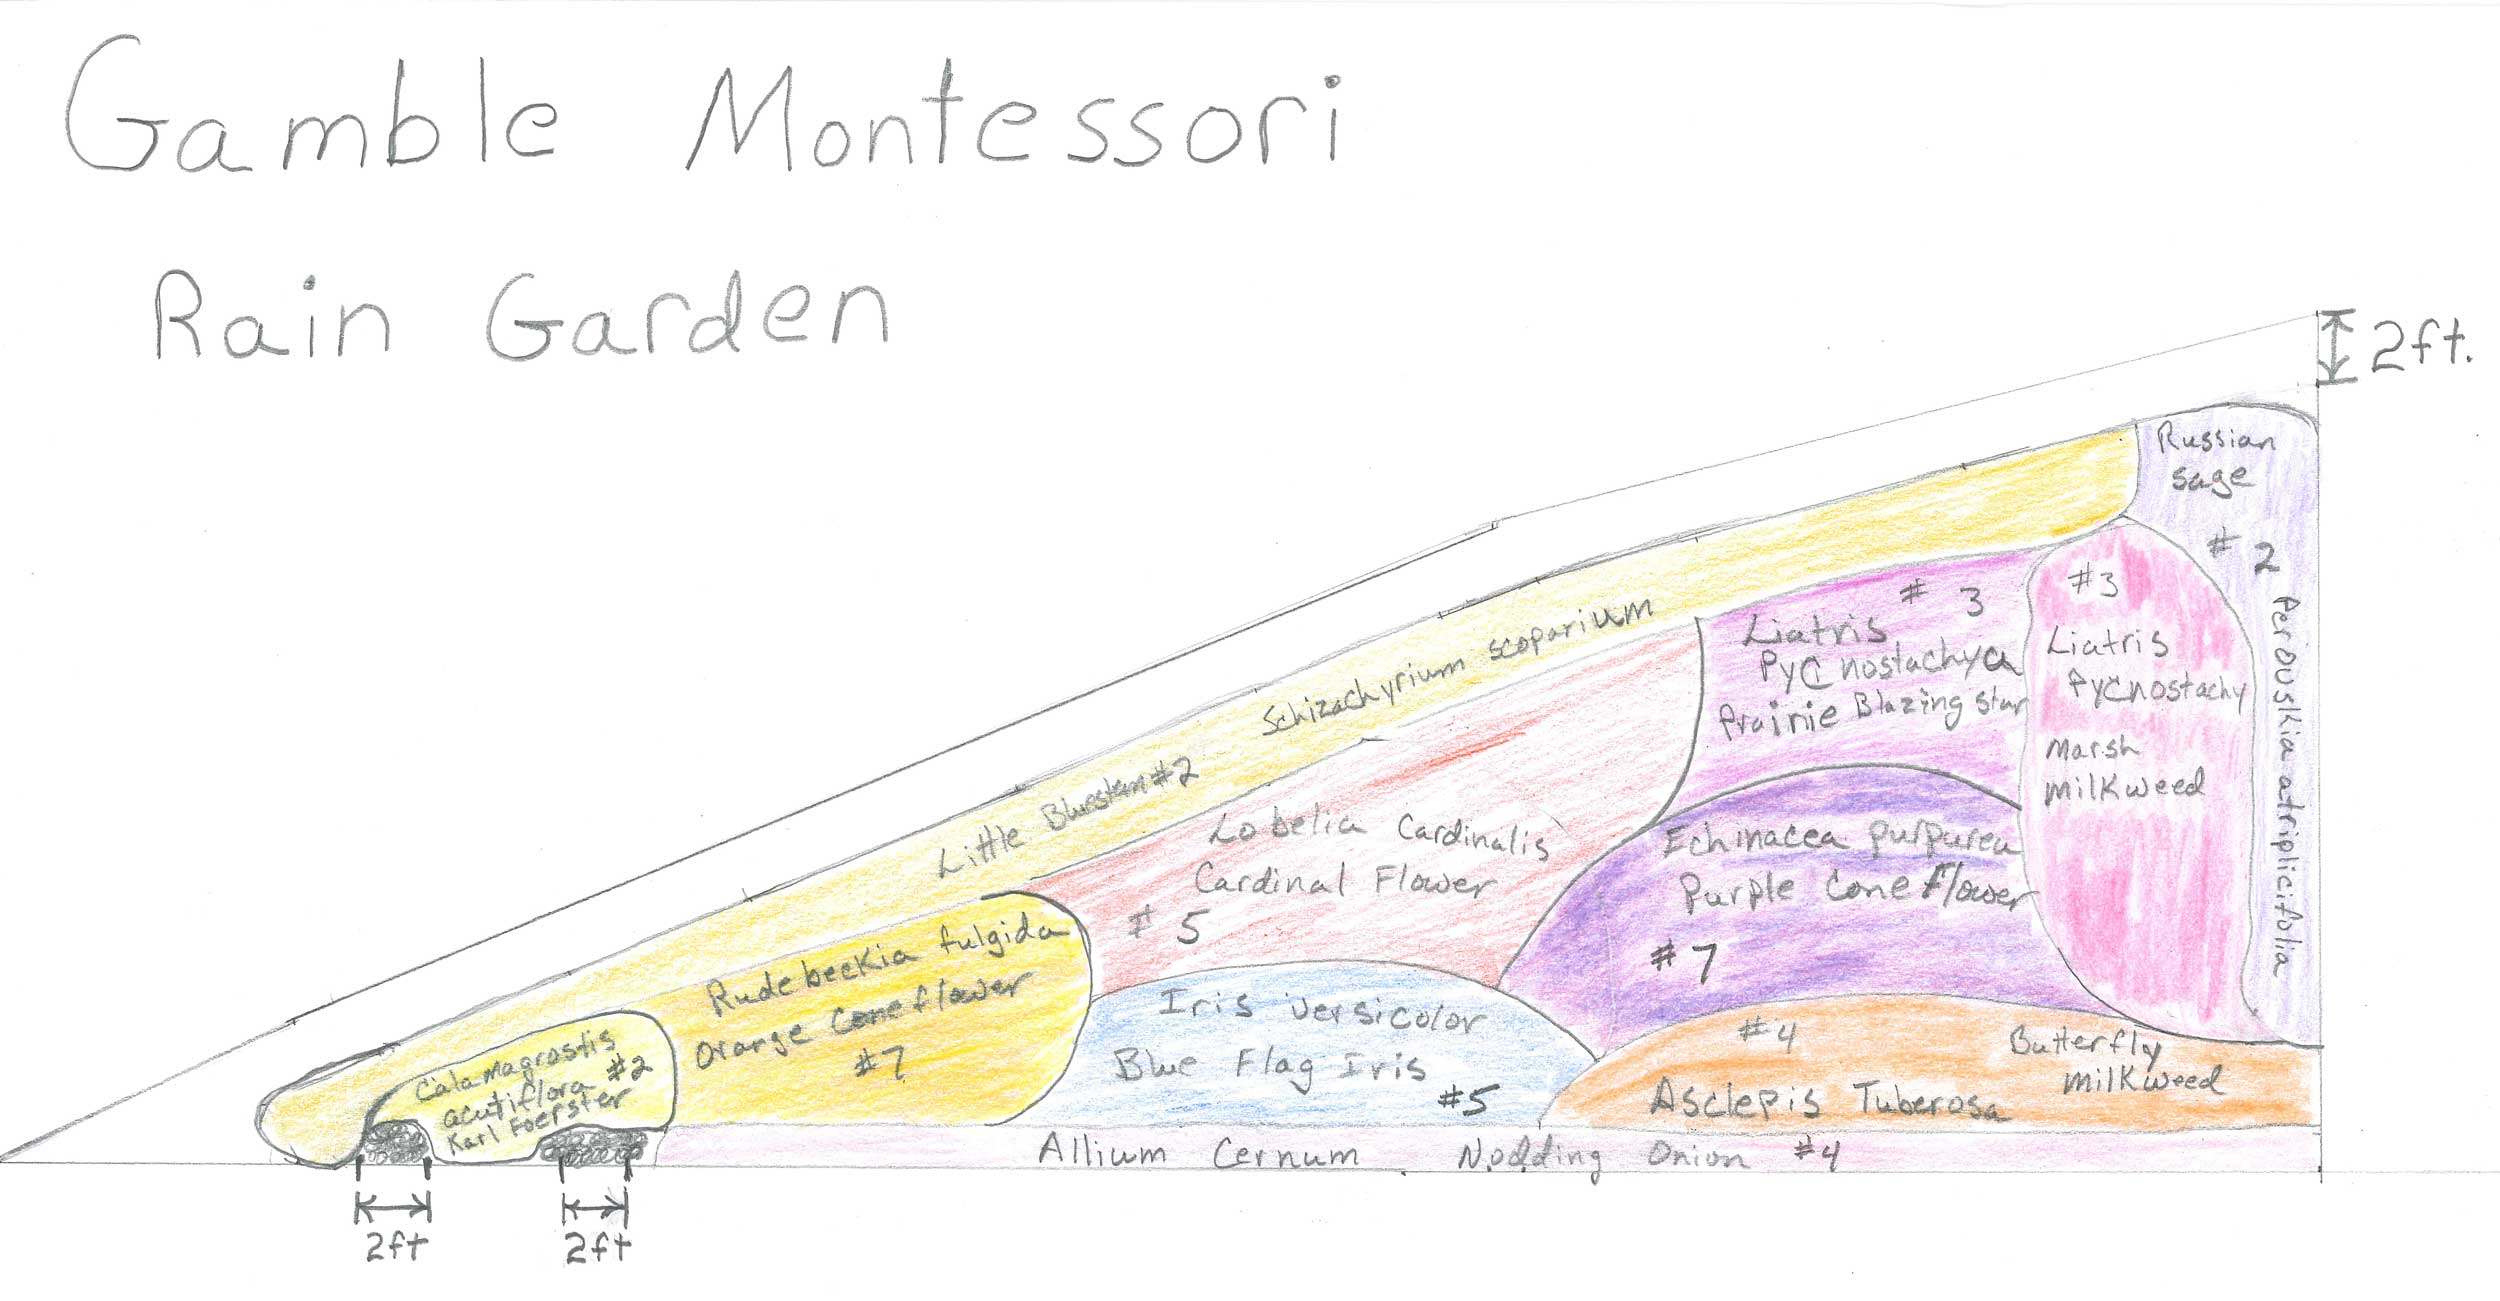 A sketch of the plans for the rain garden layout